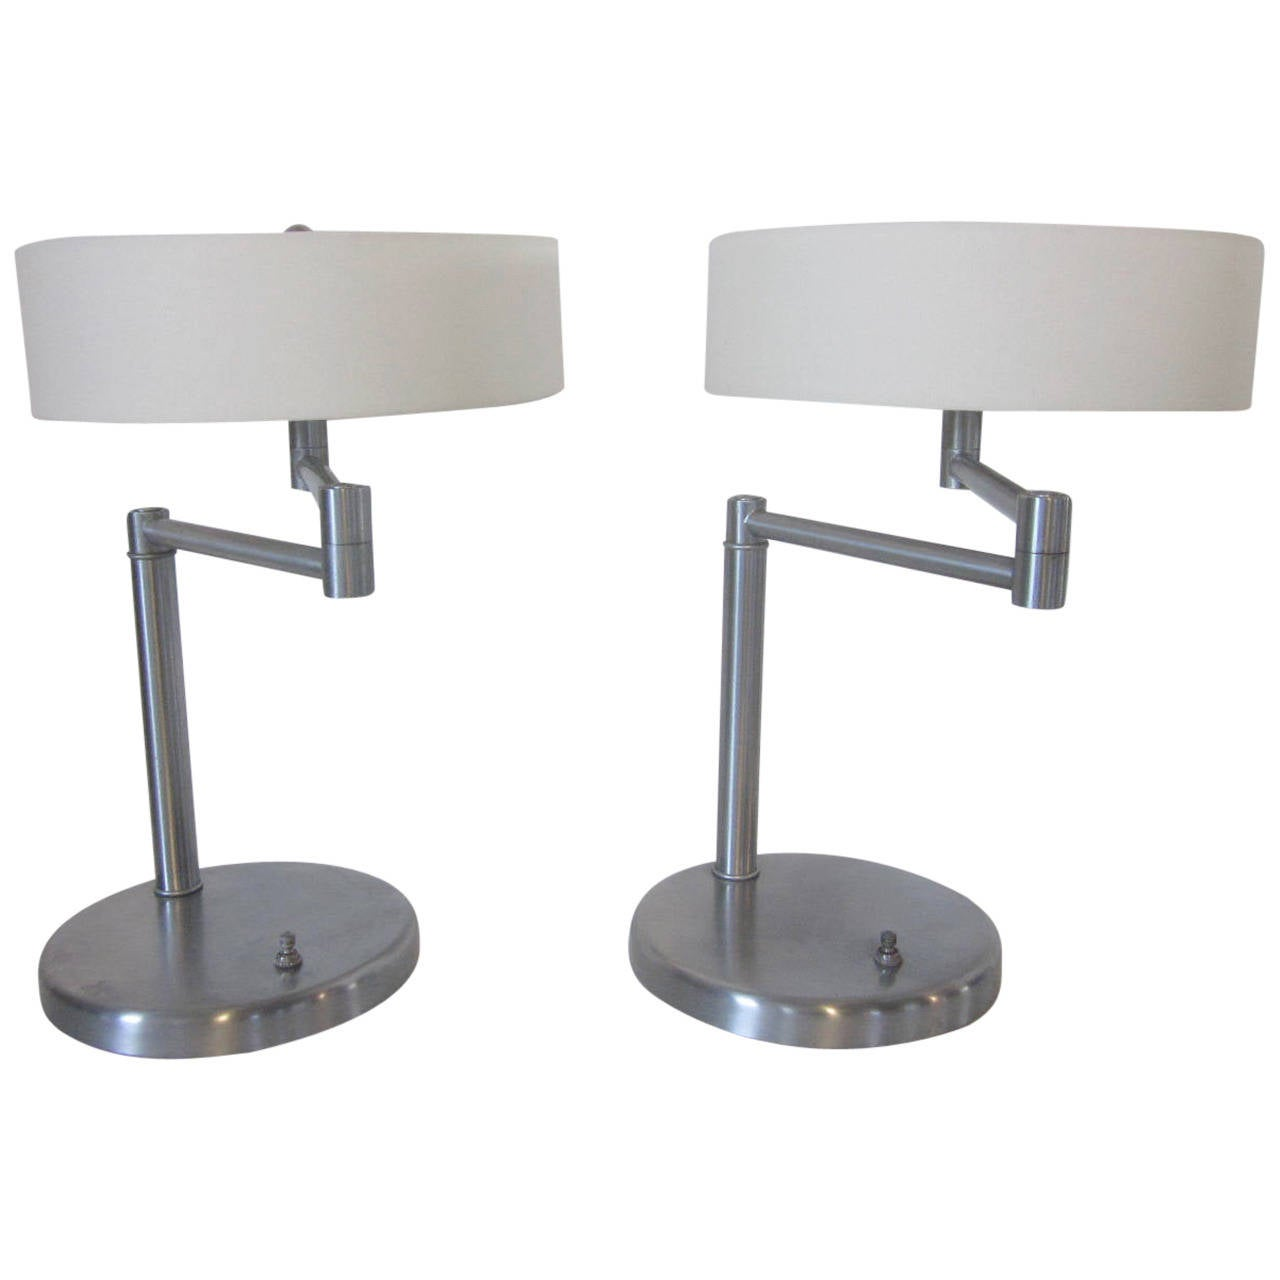 nessen swing arm table lamps at 1stdibs. Black Bedroom Furniture Sets. Home Design Ideas